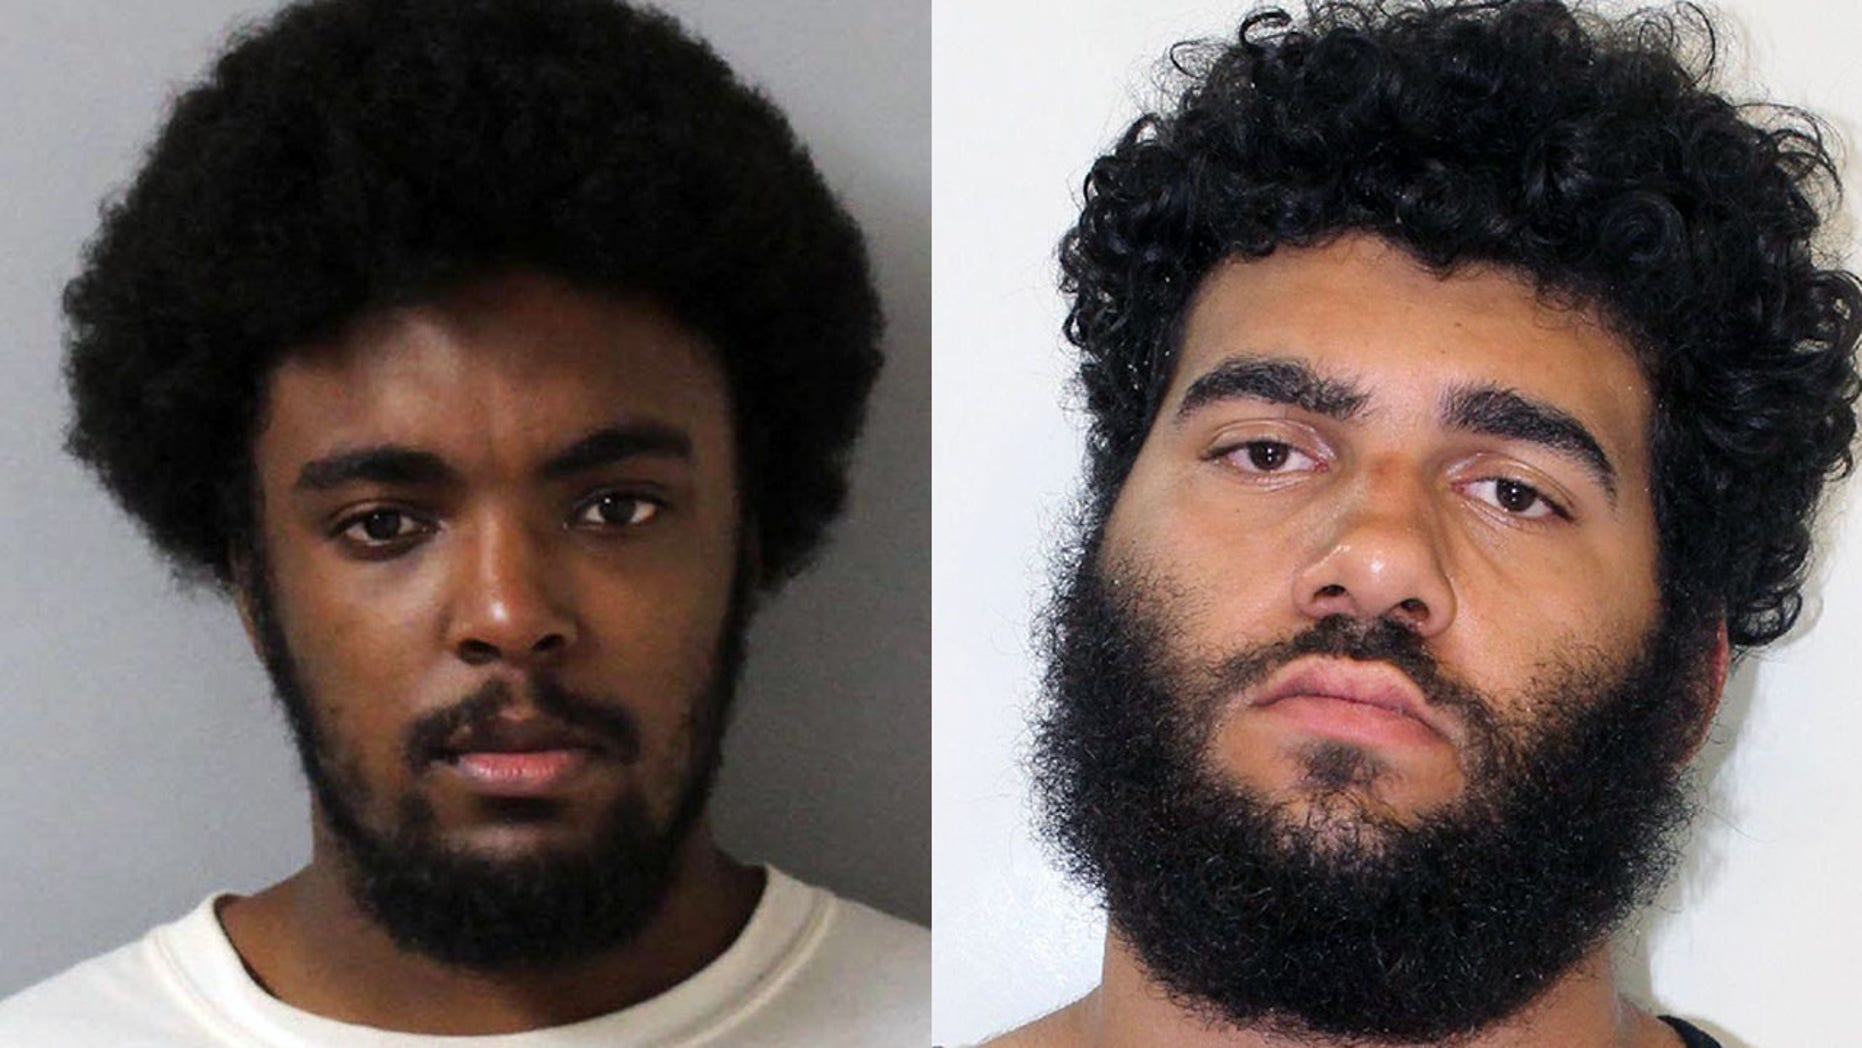 Lacory Lytle, left, and Demontrey Logsdon, are wanted for questioning in a series of shootings that have killed three people.